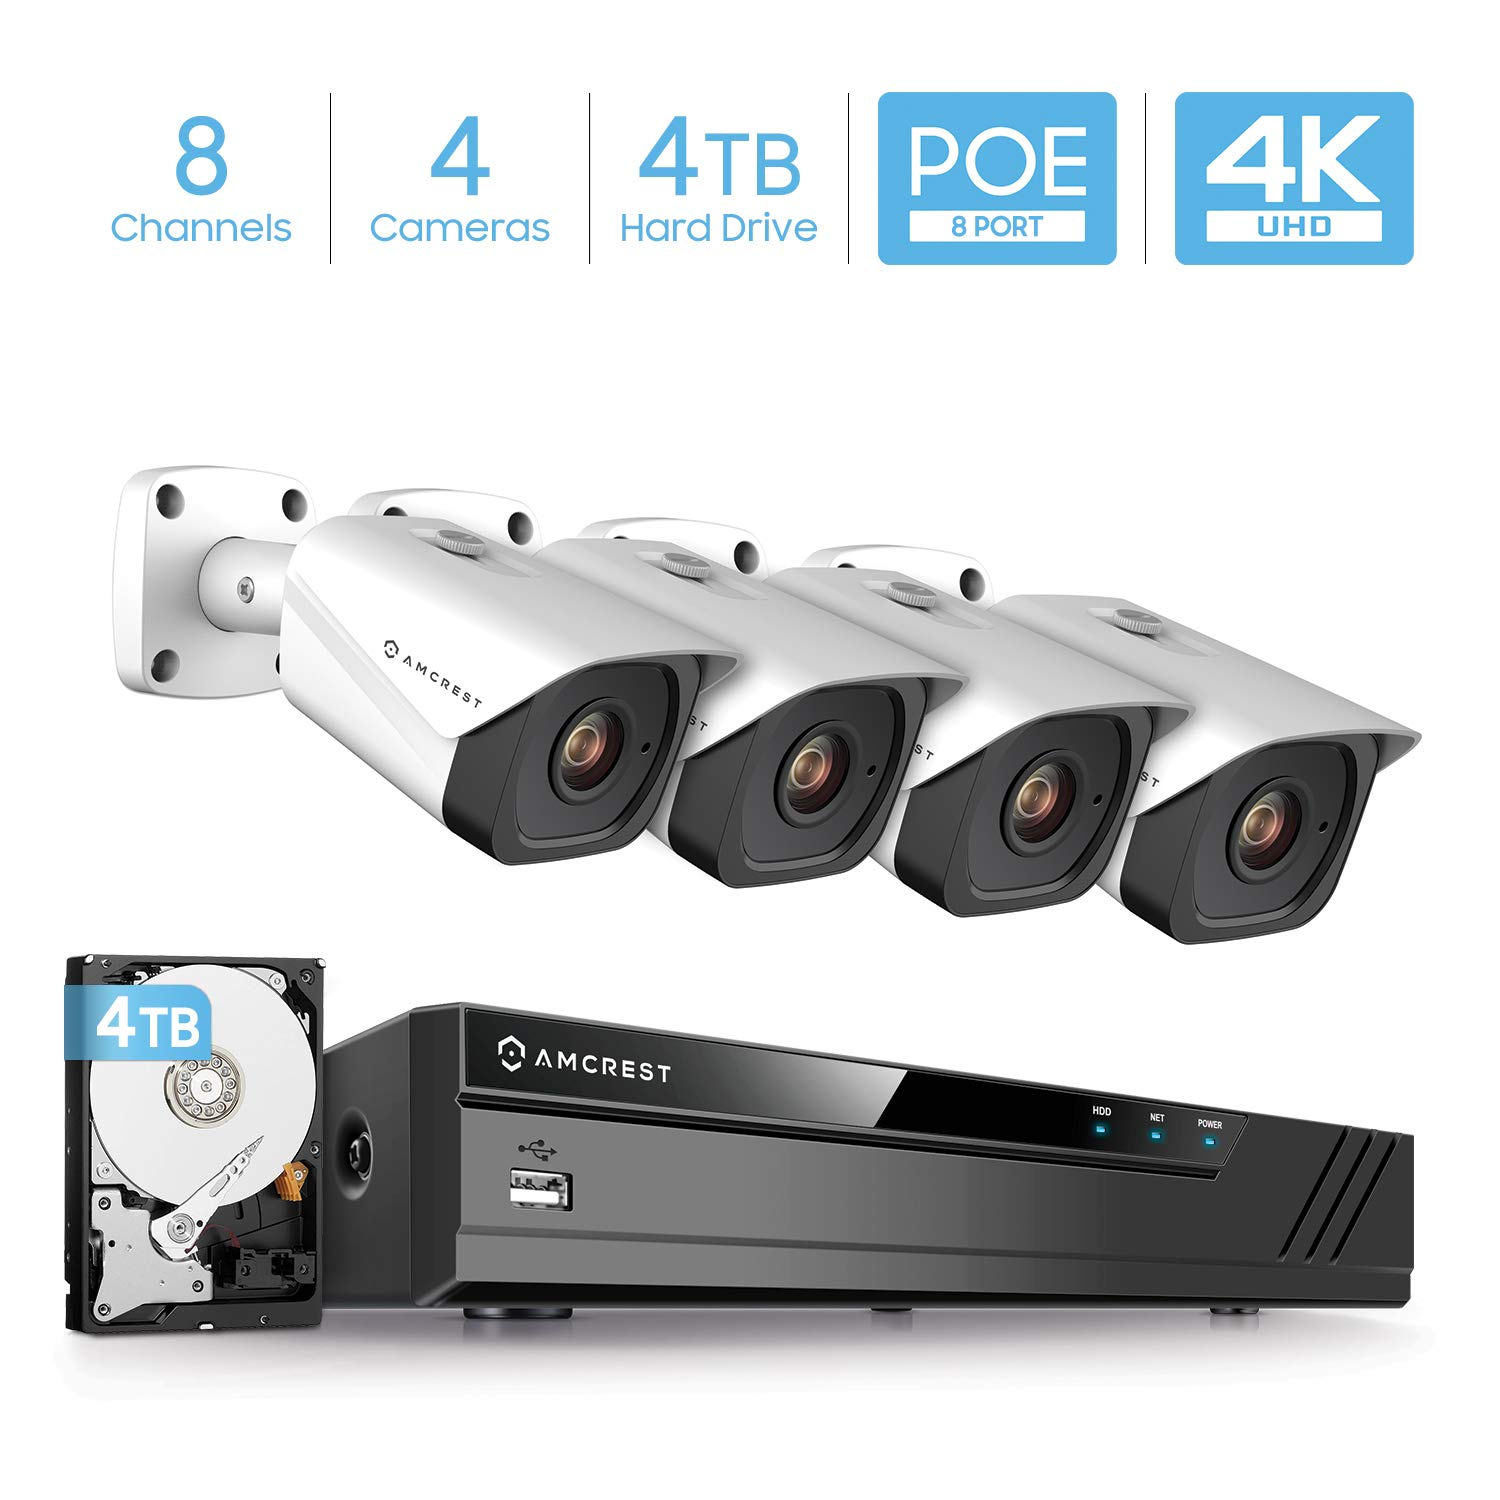 Amcrest 4K Security Camera System w 4K 8MP 8CH PoE NVR, 4 x 4K 8-Megapixel IP67 Weatherproof Metal Bullet POE IP Cameras, Pre-Installed TB Hard Drive, NV4108E-IP8M-2496EW4-4TB White